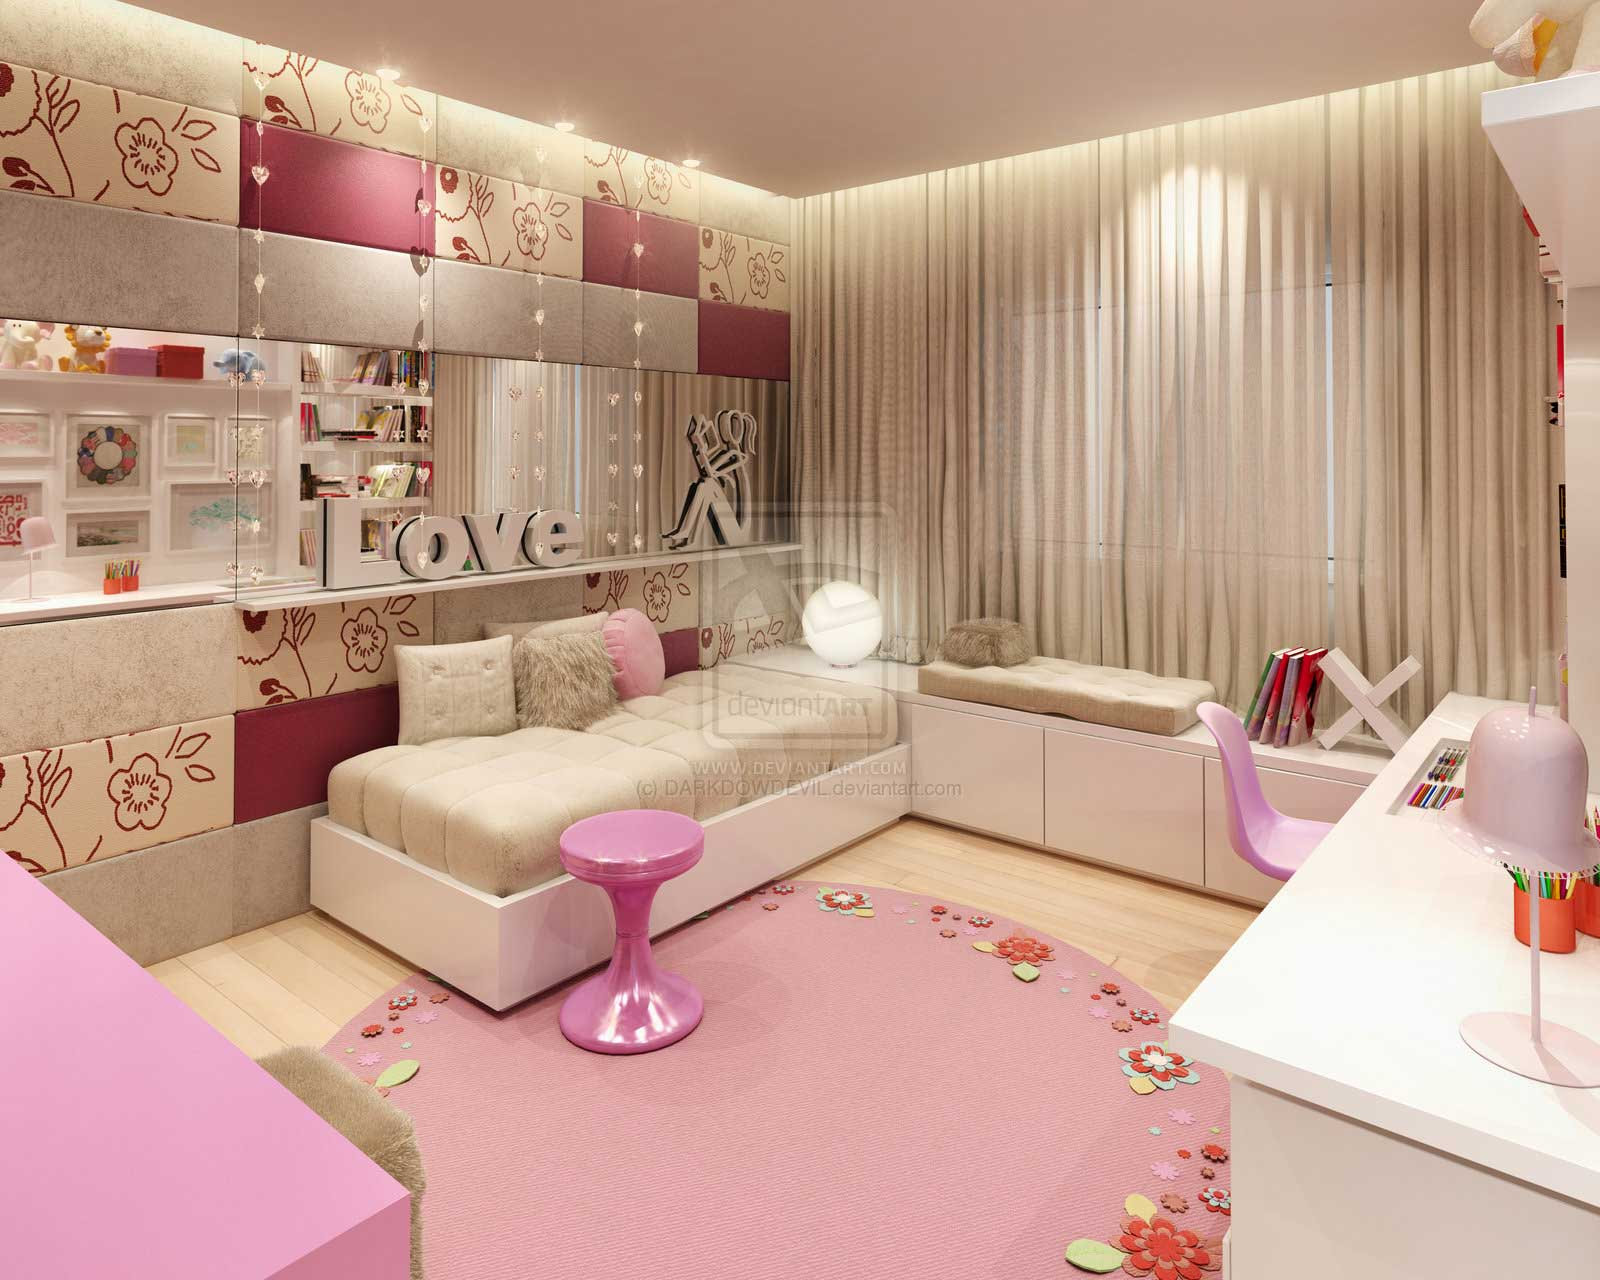 Comfort Pink Girl Bedroom By Darkdowdevil Interior Design Ideas